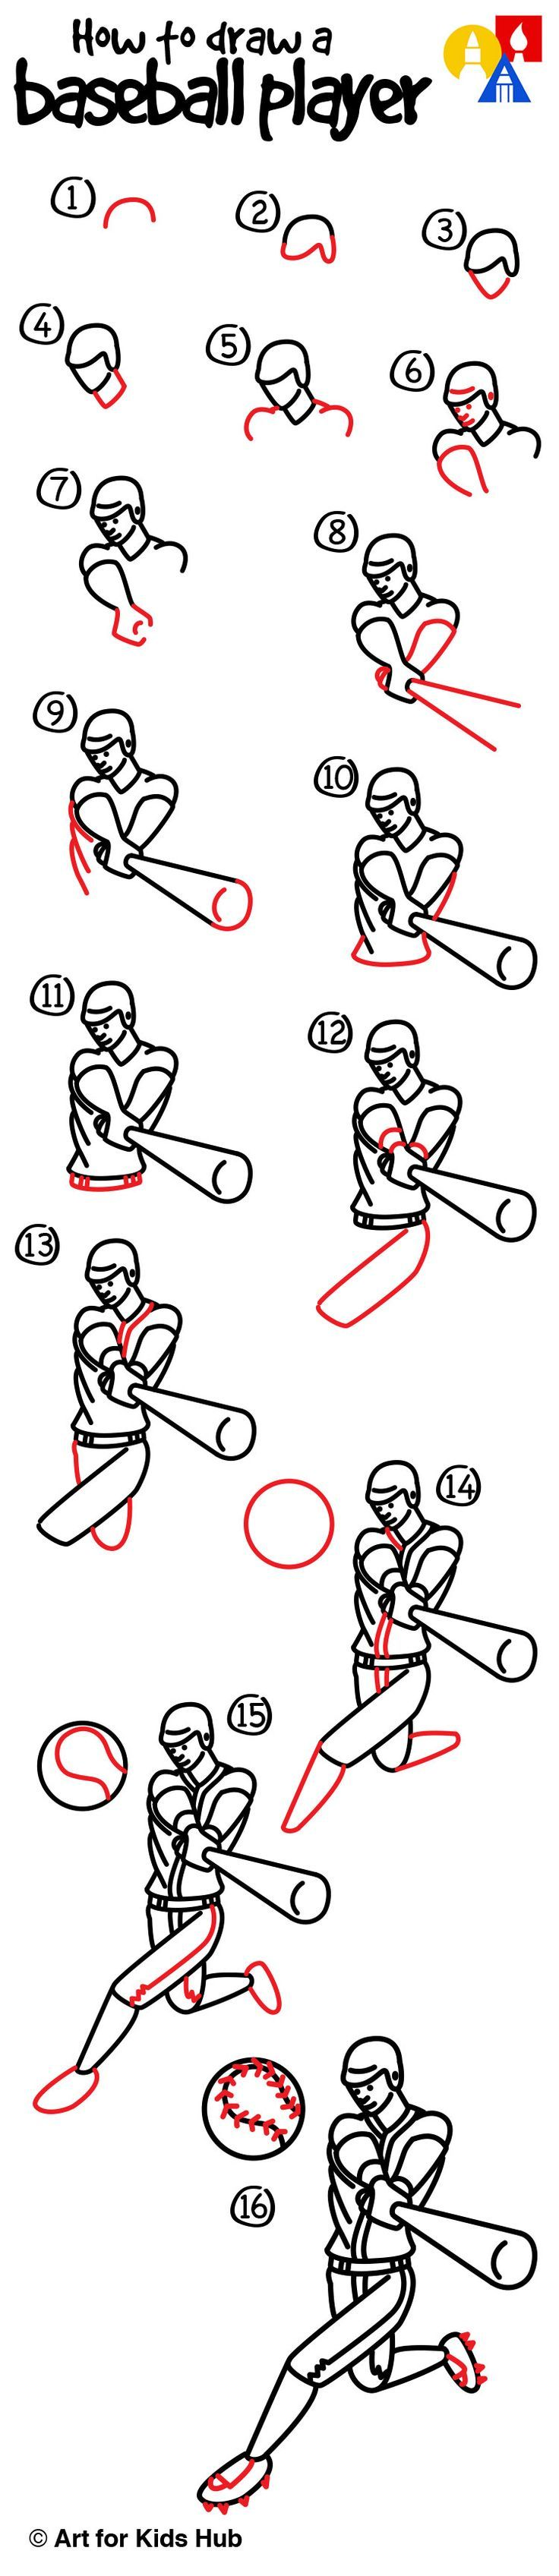 How To Draw A Baseball Player Art For Kids Hub Art For Kids Hub Drawing For Kids Art For Kids